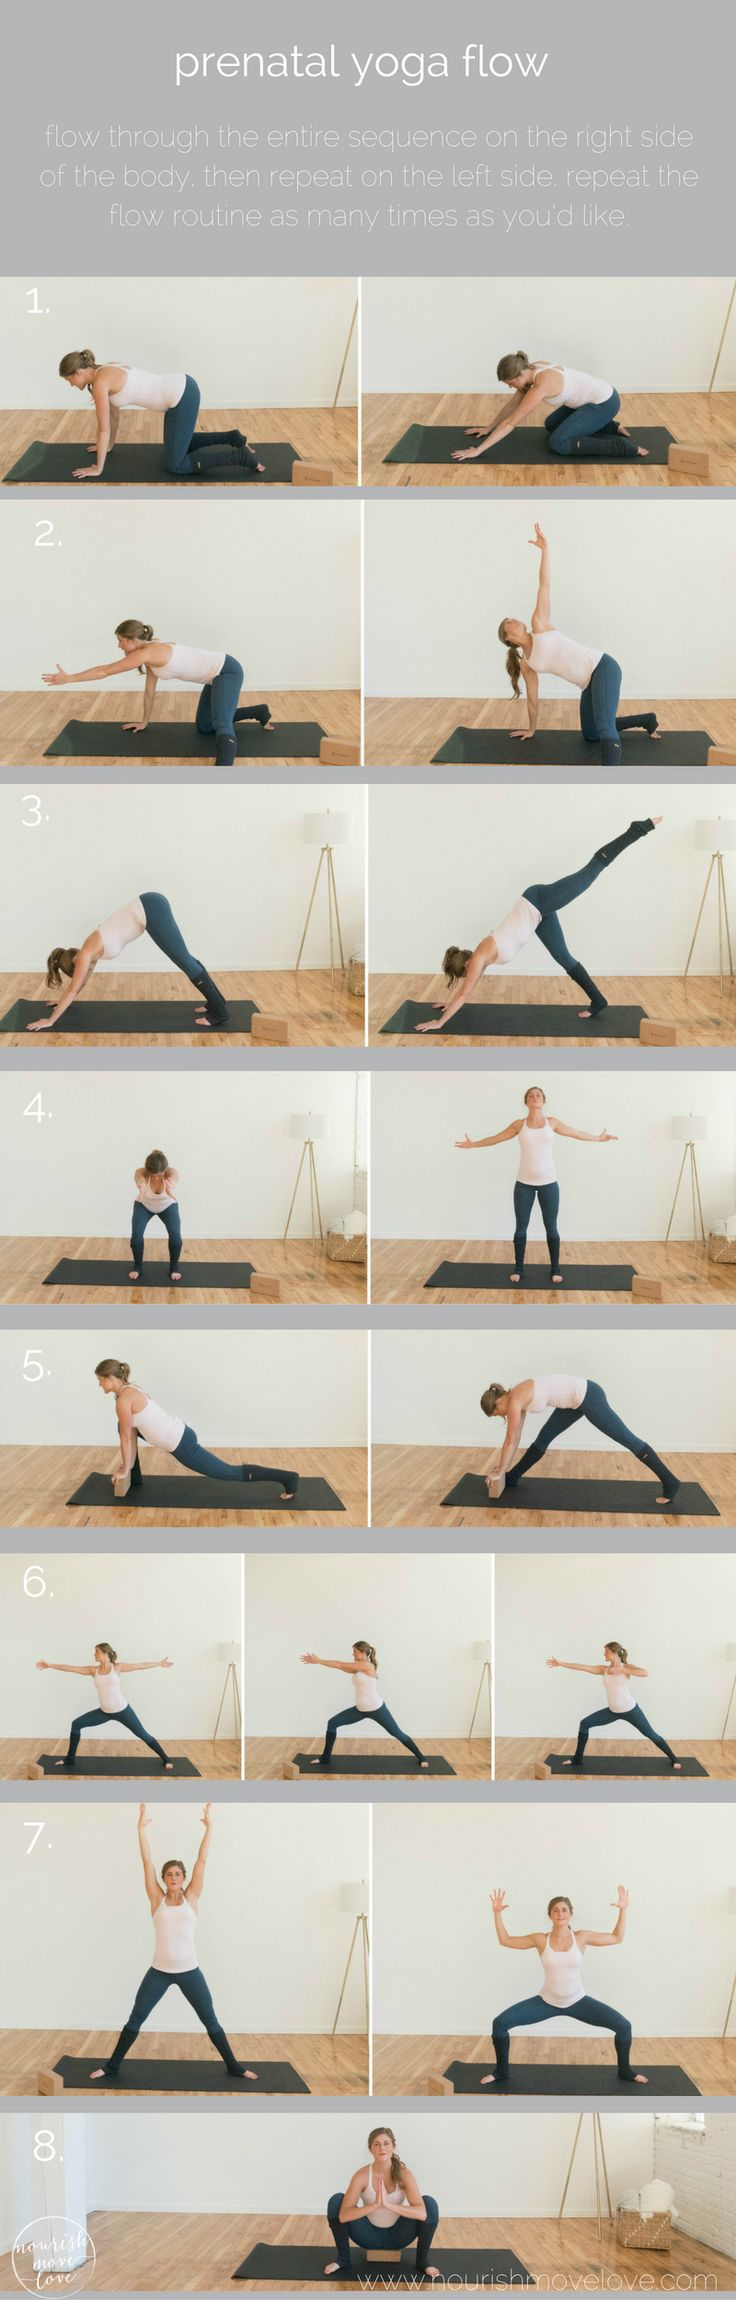 these 8 prenatal yoga poses will help you strengthen and tone during all three trimesters, while also stretching the tight muscles associated pregnancy.